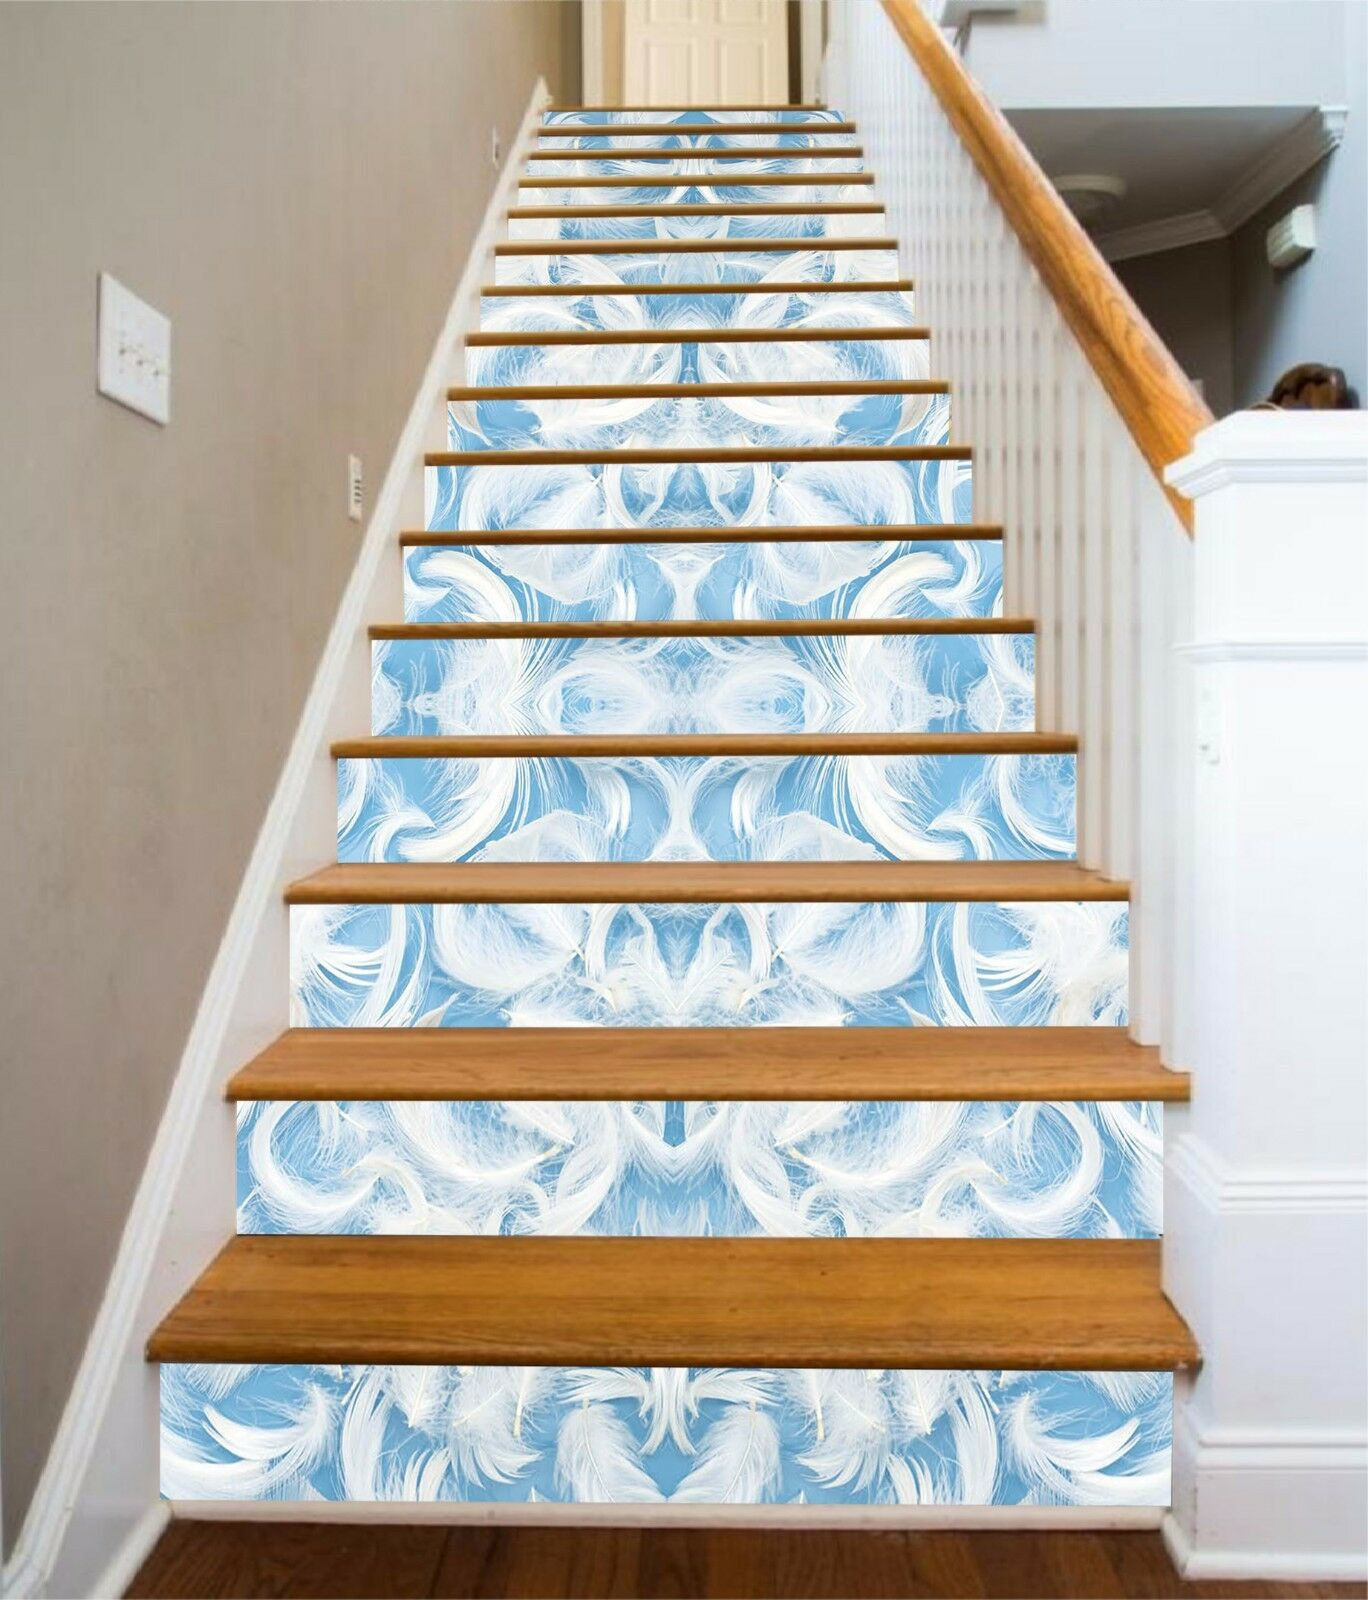 3D bianca Feathers 5 Stair Risers Decoration Photo Mural Vinyl Decal Wallpaper AU